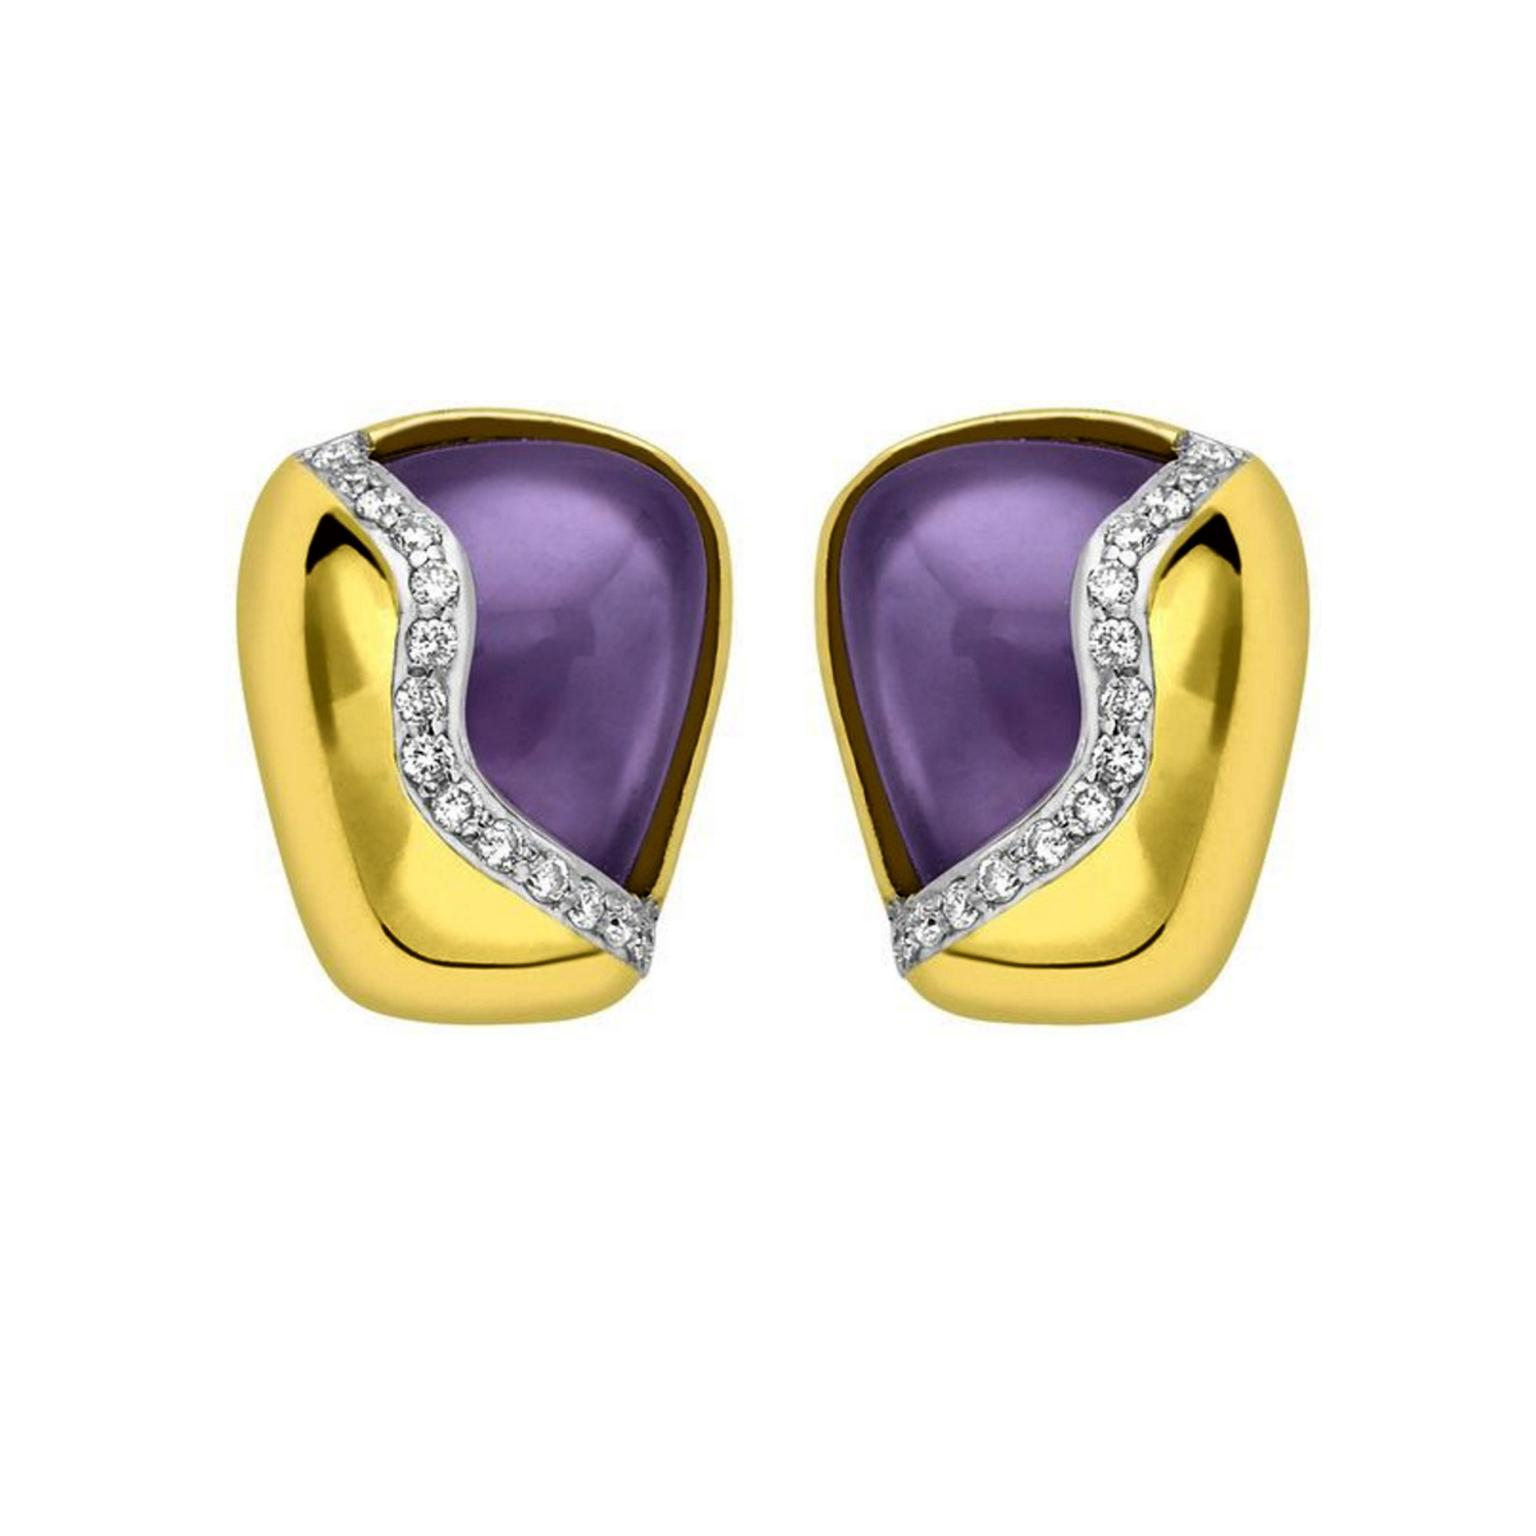 Hydra Amethyst Earrings In Yellow Gold With Diamonds